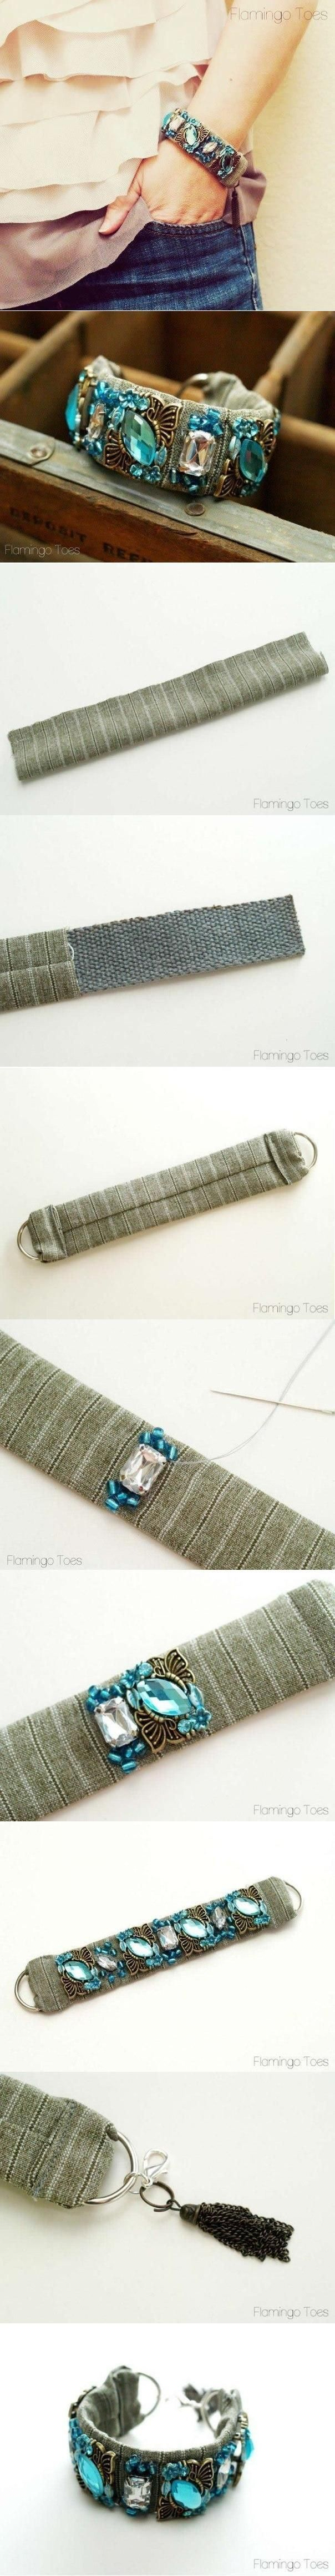 DIY - Vintage Style Cuff, found on v.u.e. I love this I could make this and make a pocket inside for my fitbit